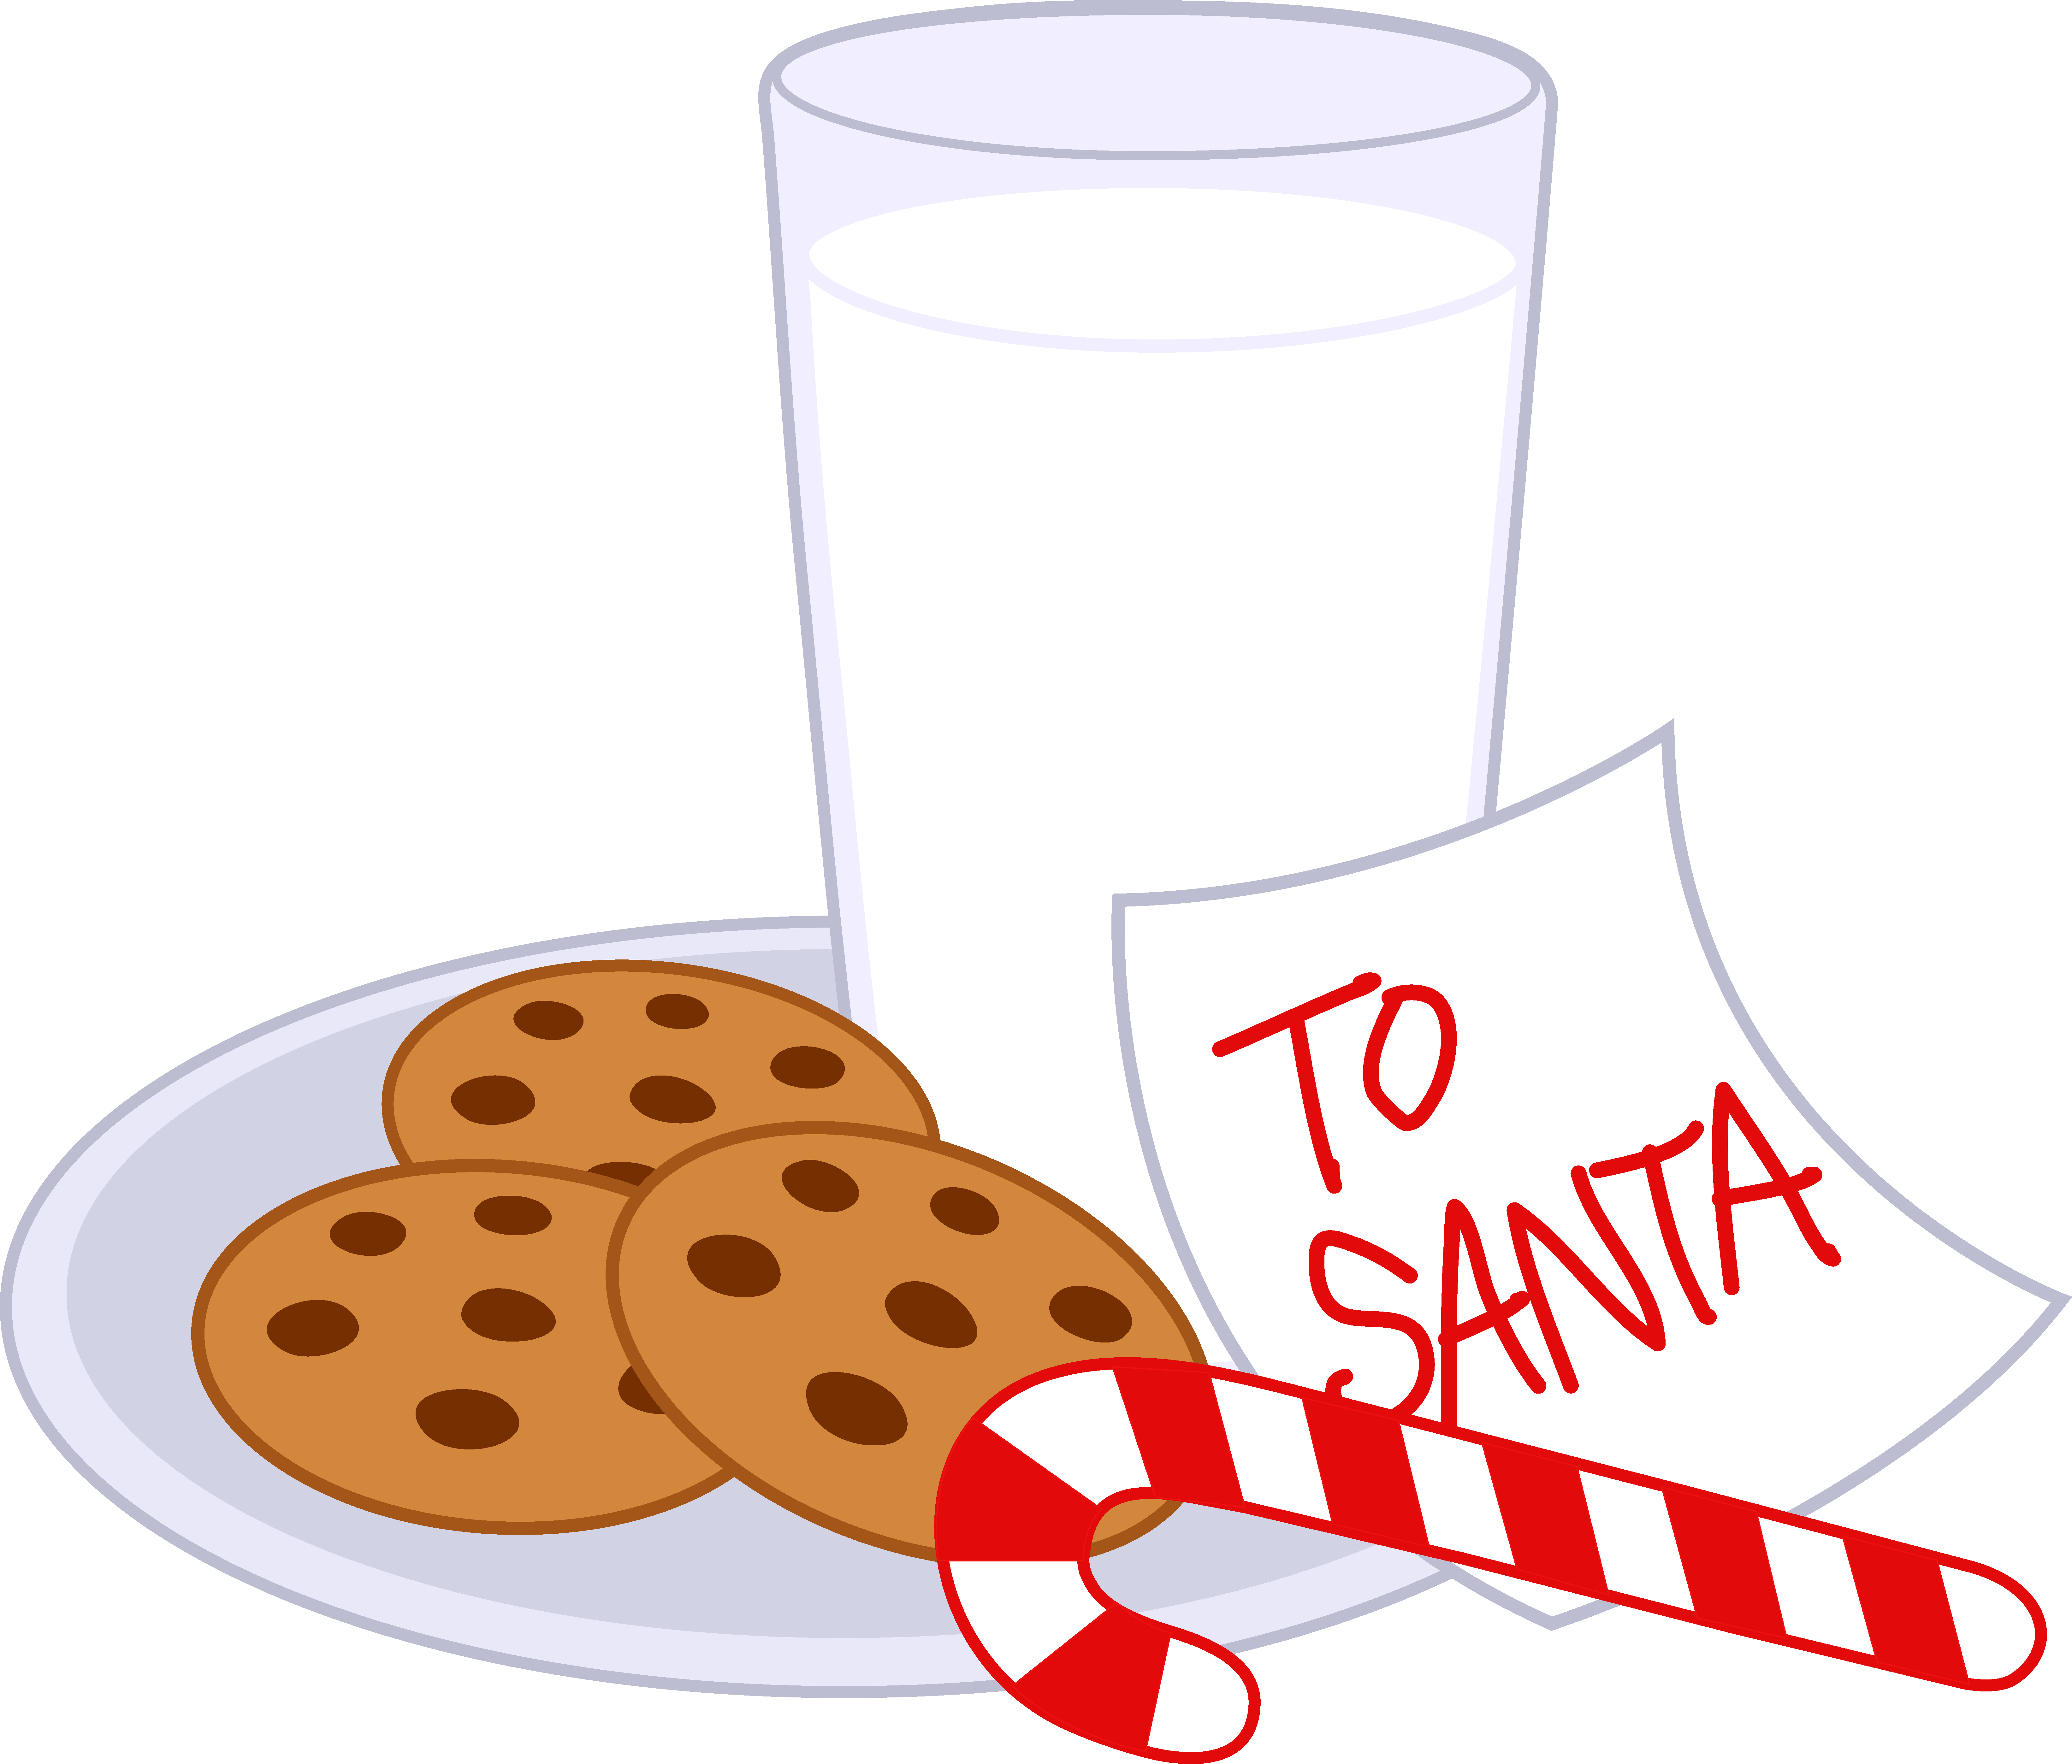 Cookies and milk for santa clipart image black and white Cookies and Milk For Santa Claus - Free Clip Art image black and white